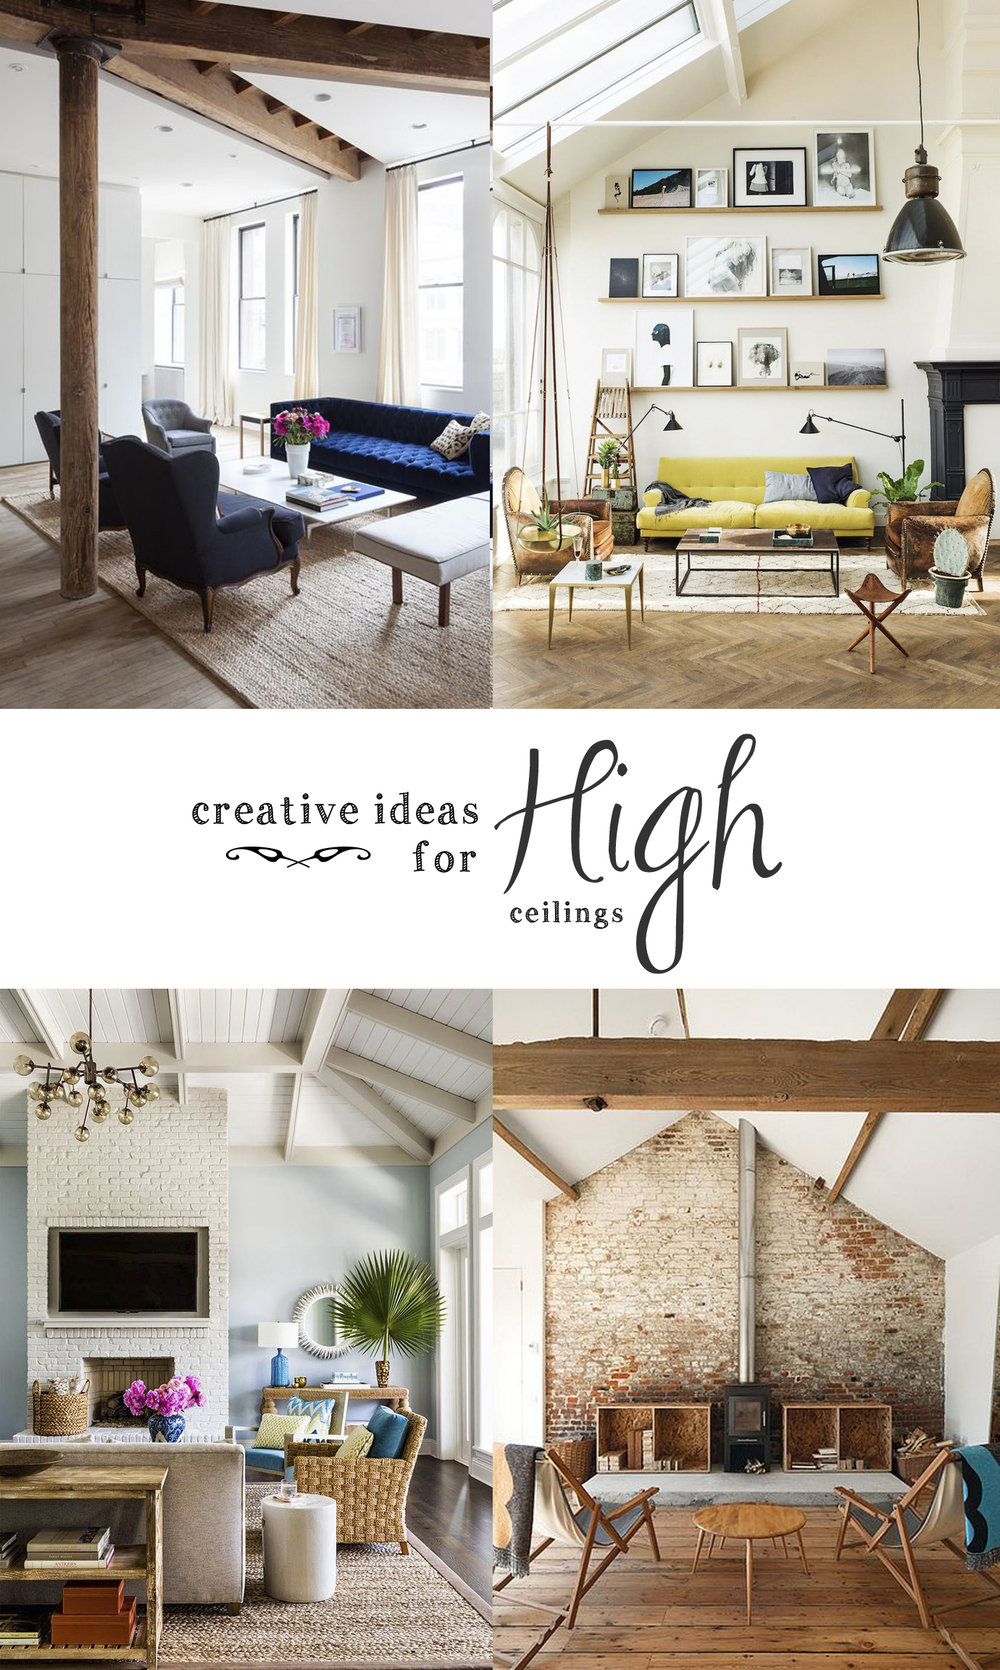 High ceilings without treatment can seem bare and stark. So here are six texture rich ideas that will add personality to your space!